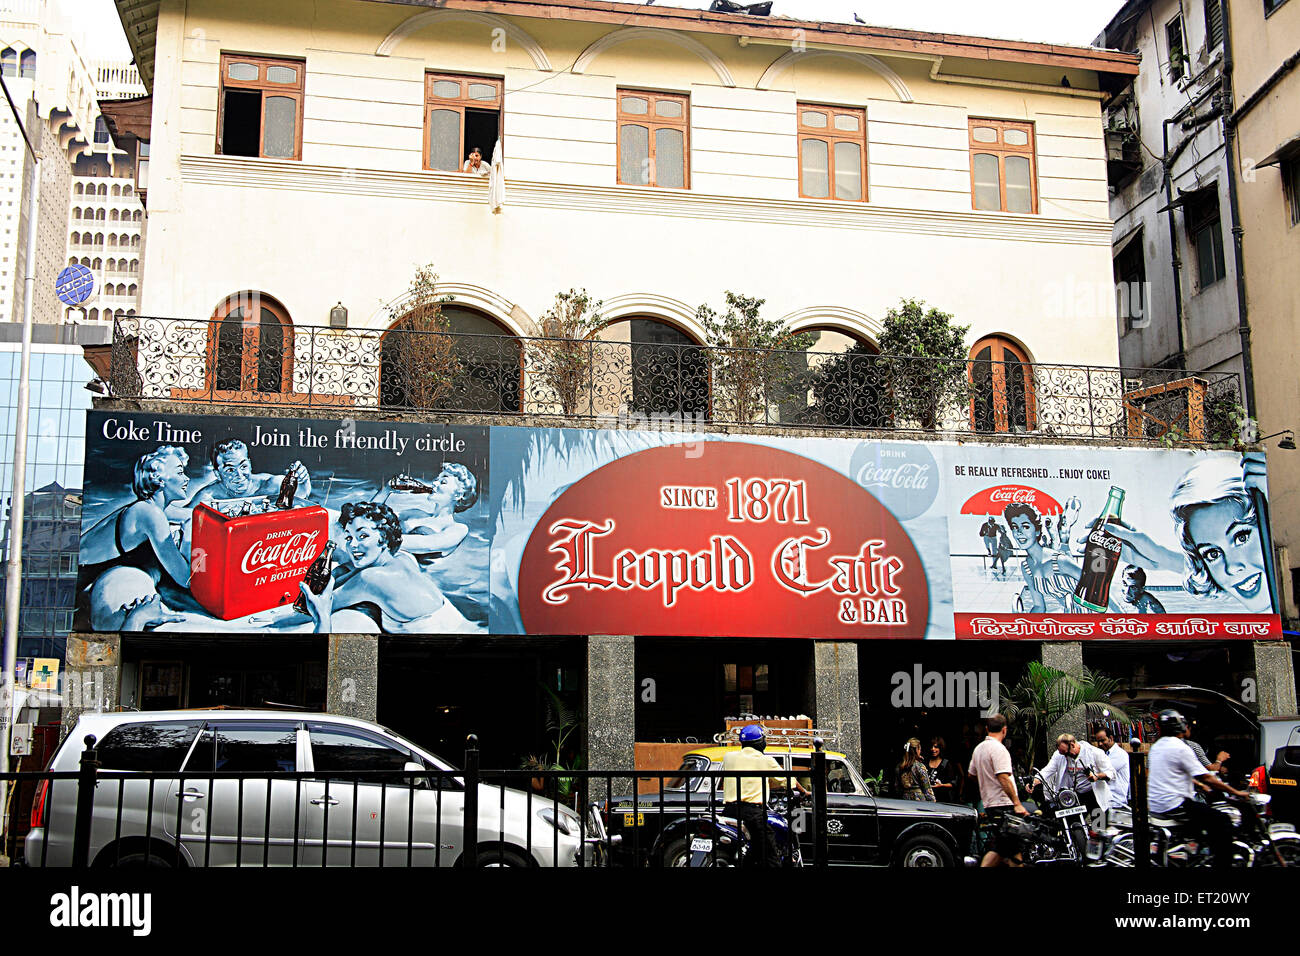 Leopold cafe and bar ; Bombay Mumbai ; Maharashtra ; India - Stock Image